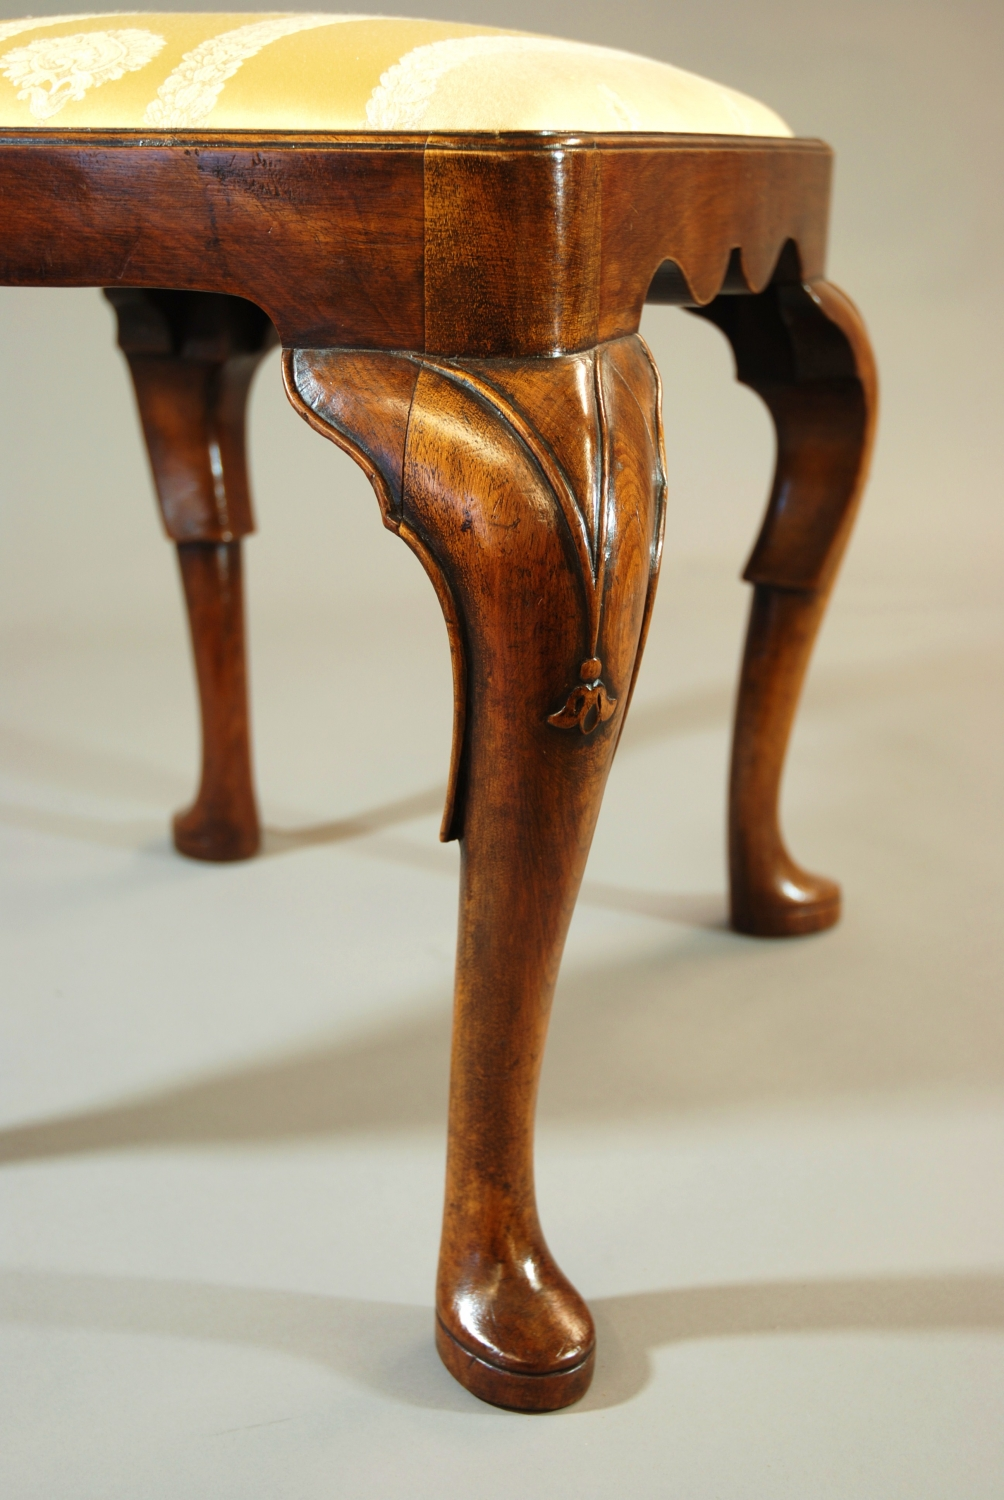 http://www.lvsdecorativearts.co.uk/upload/images/shopprod/11601/early-20thc-walnut-cabriole-leg-stool_11601_pic4_size3.jpg